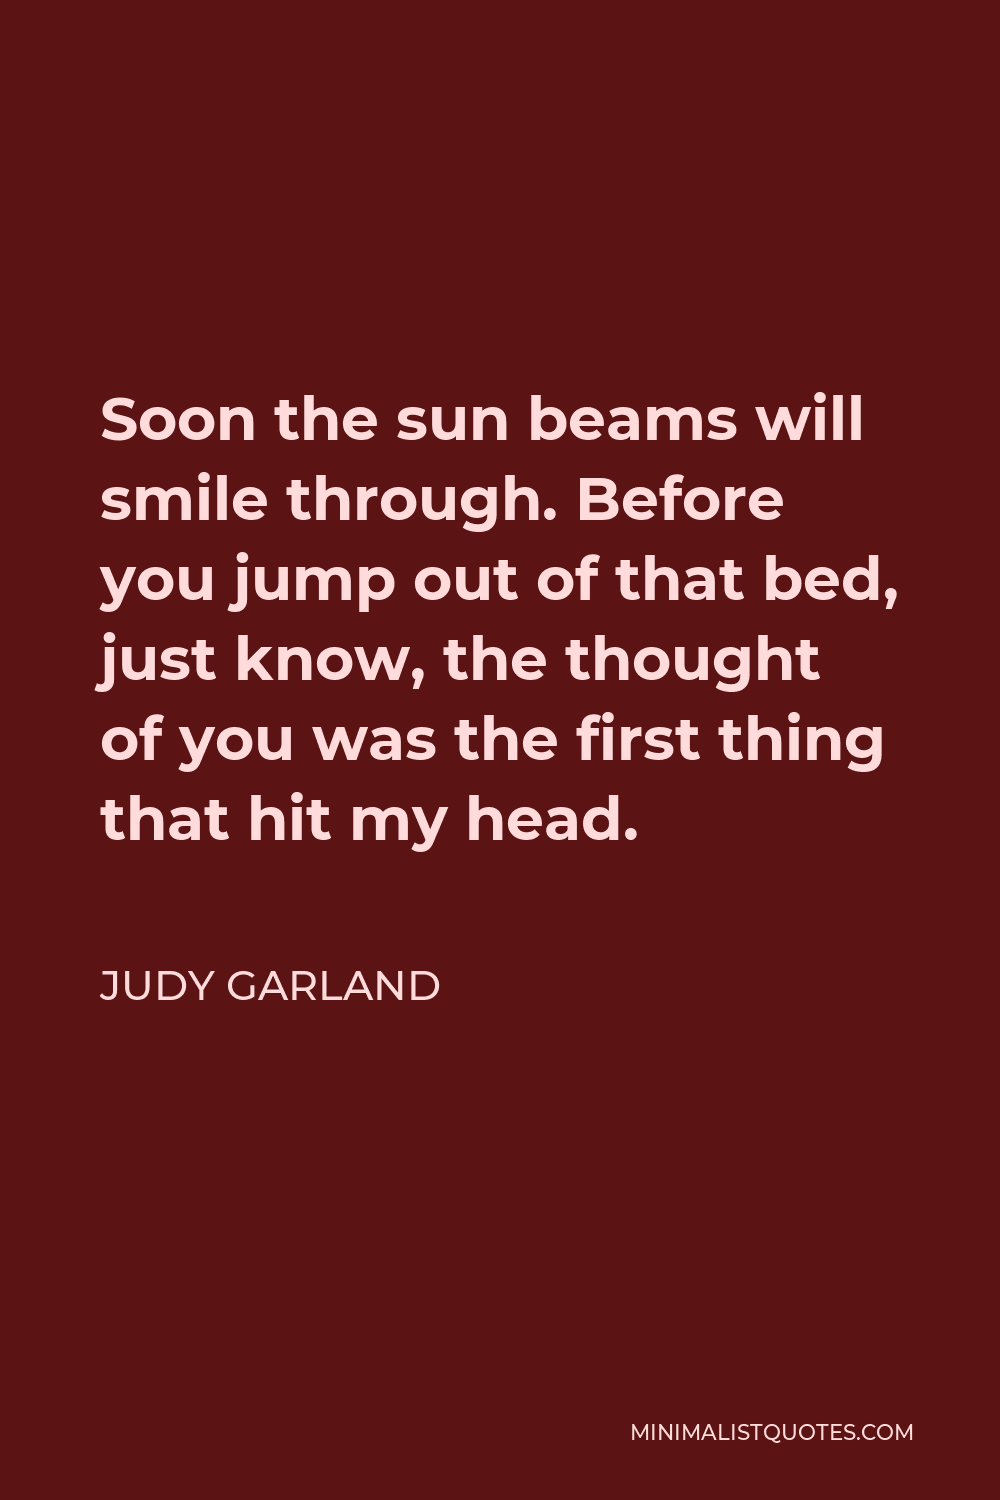 Judy Garland Quote - Soon the sun beams will smile through. Before you jump out of that bed, just know, the thought of you was the first thing that hit my head.